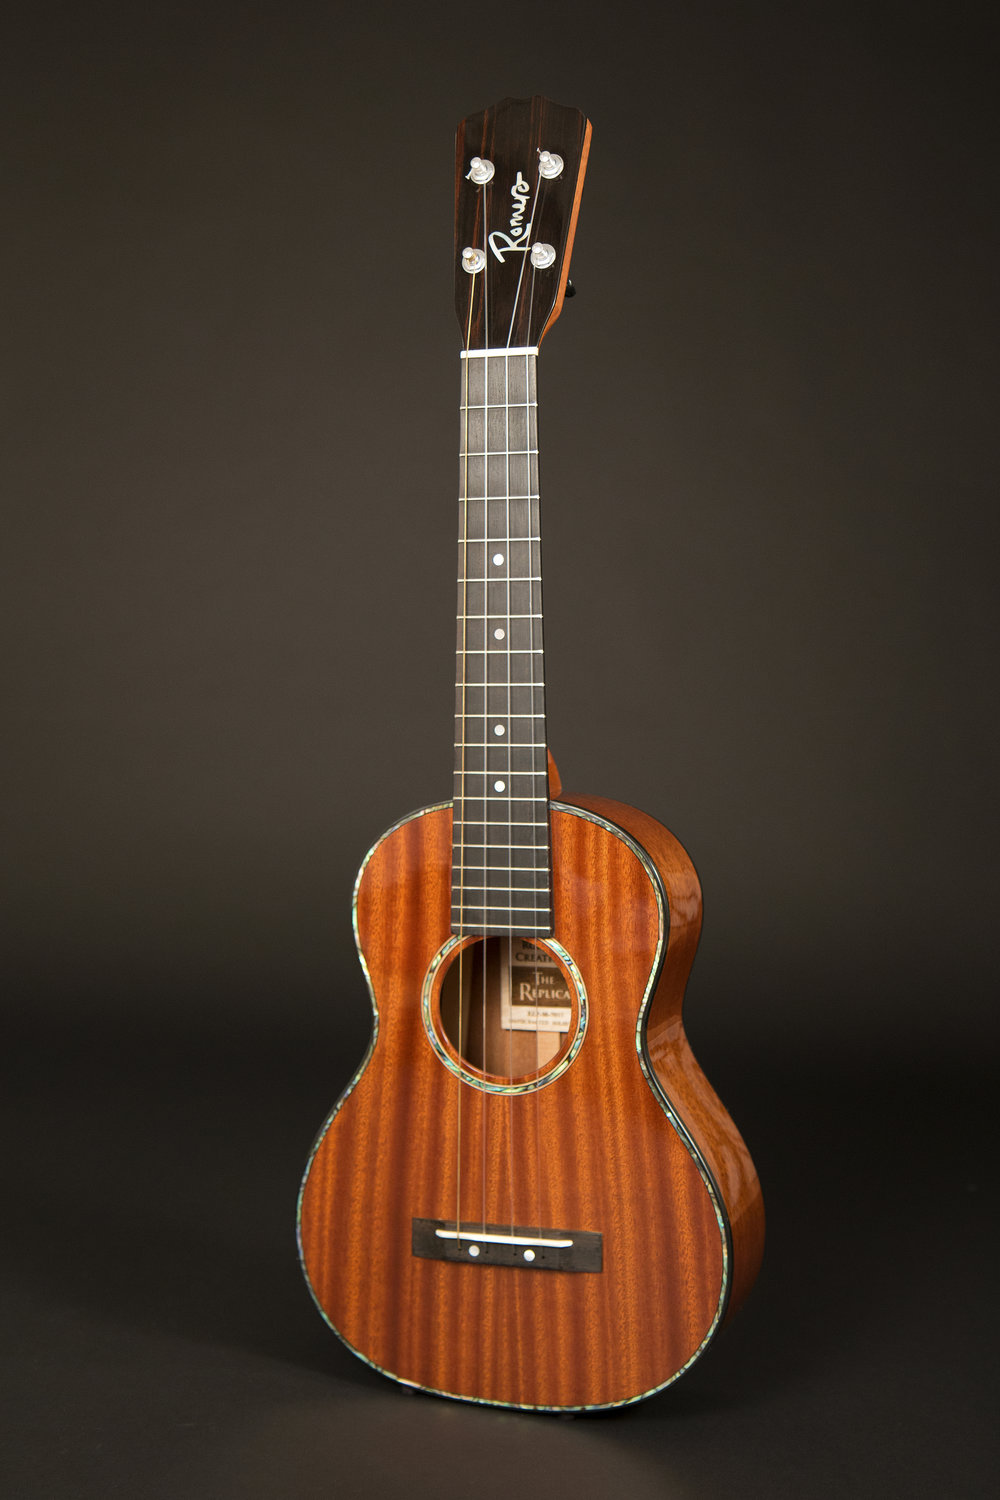 The Replica Mahogany